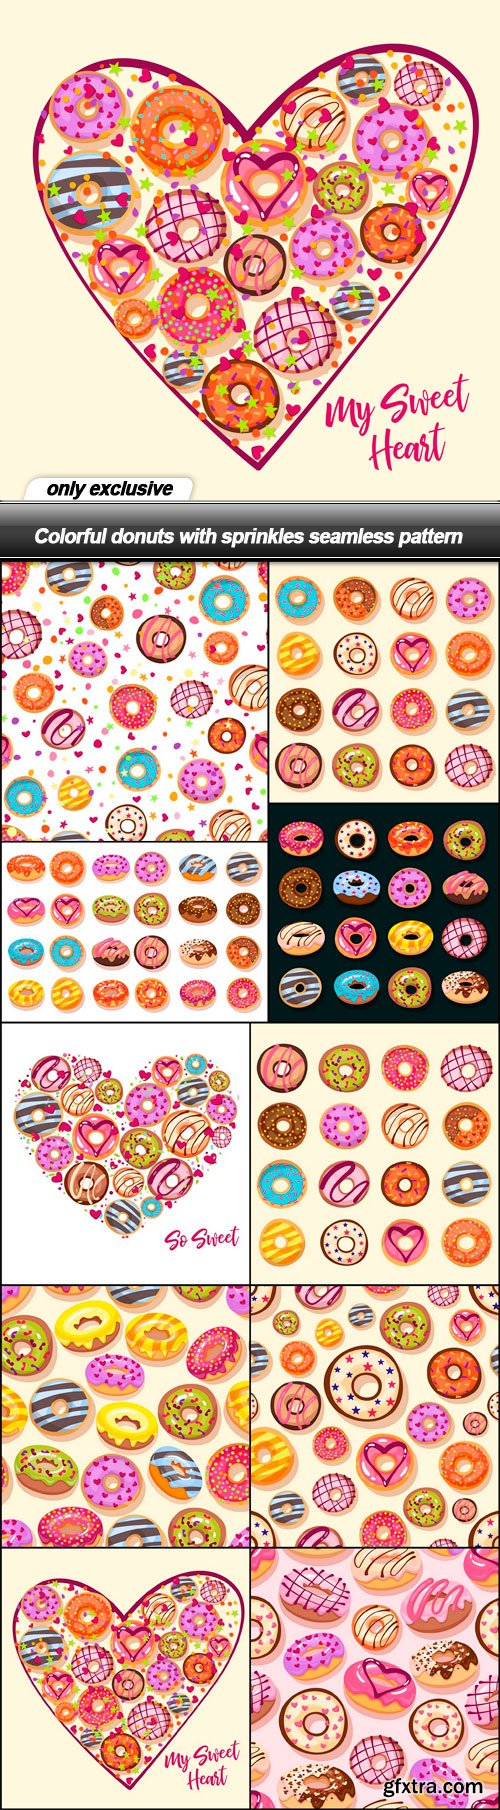 Colorful donuts with sprinkles seamless pattern - 10 EPS